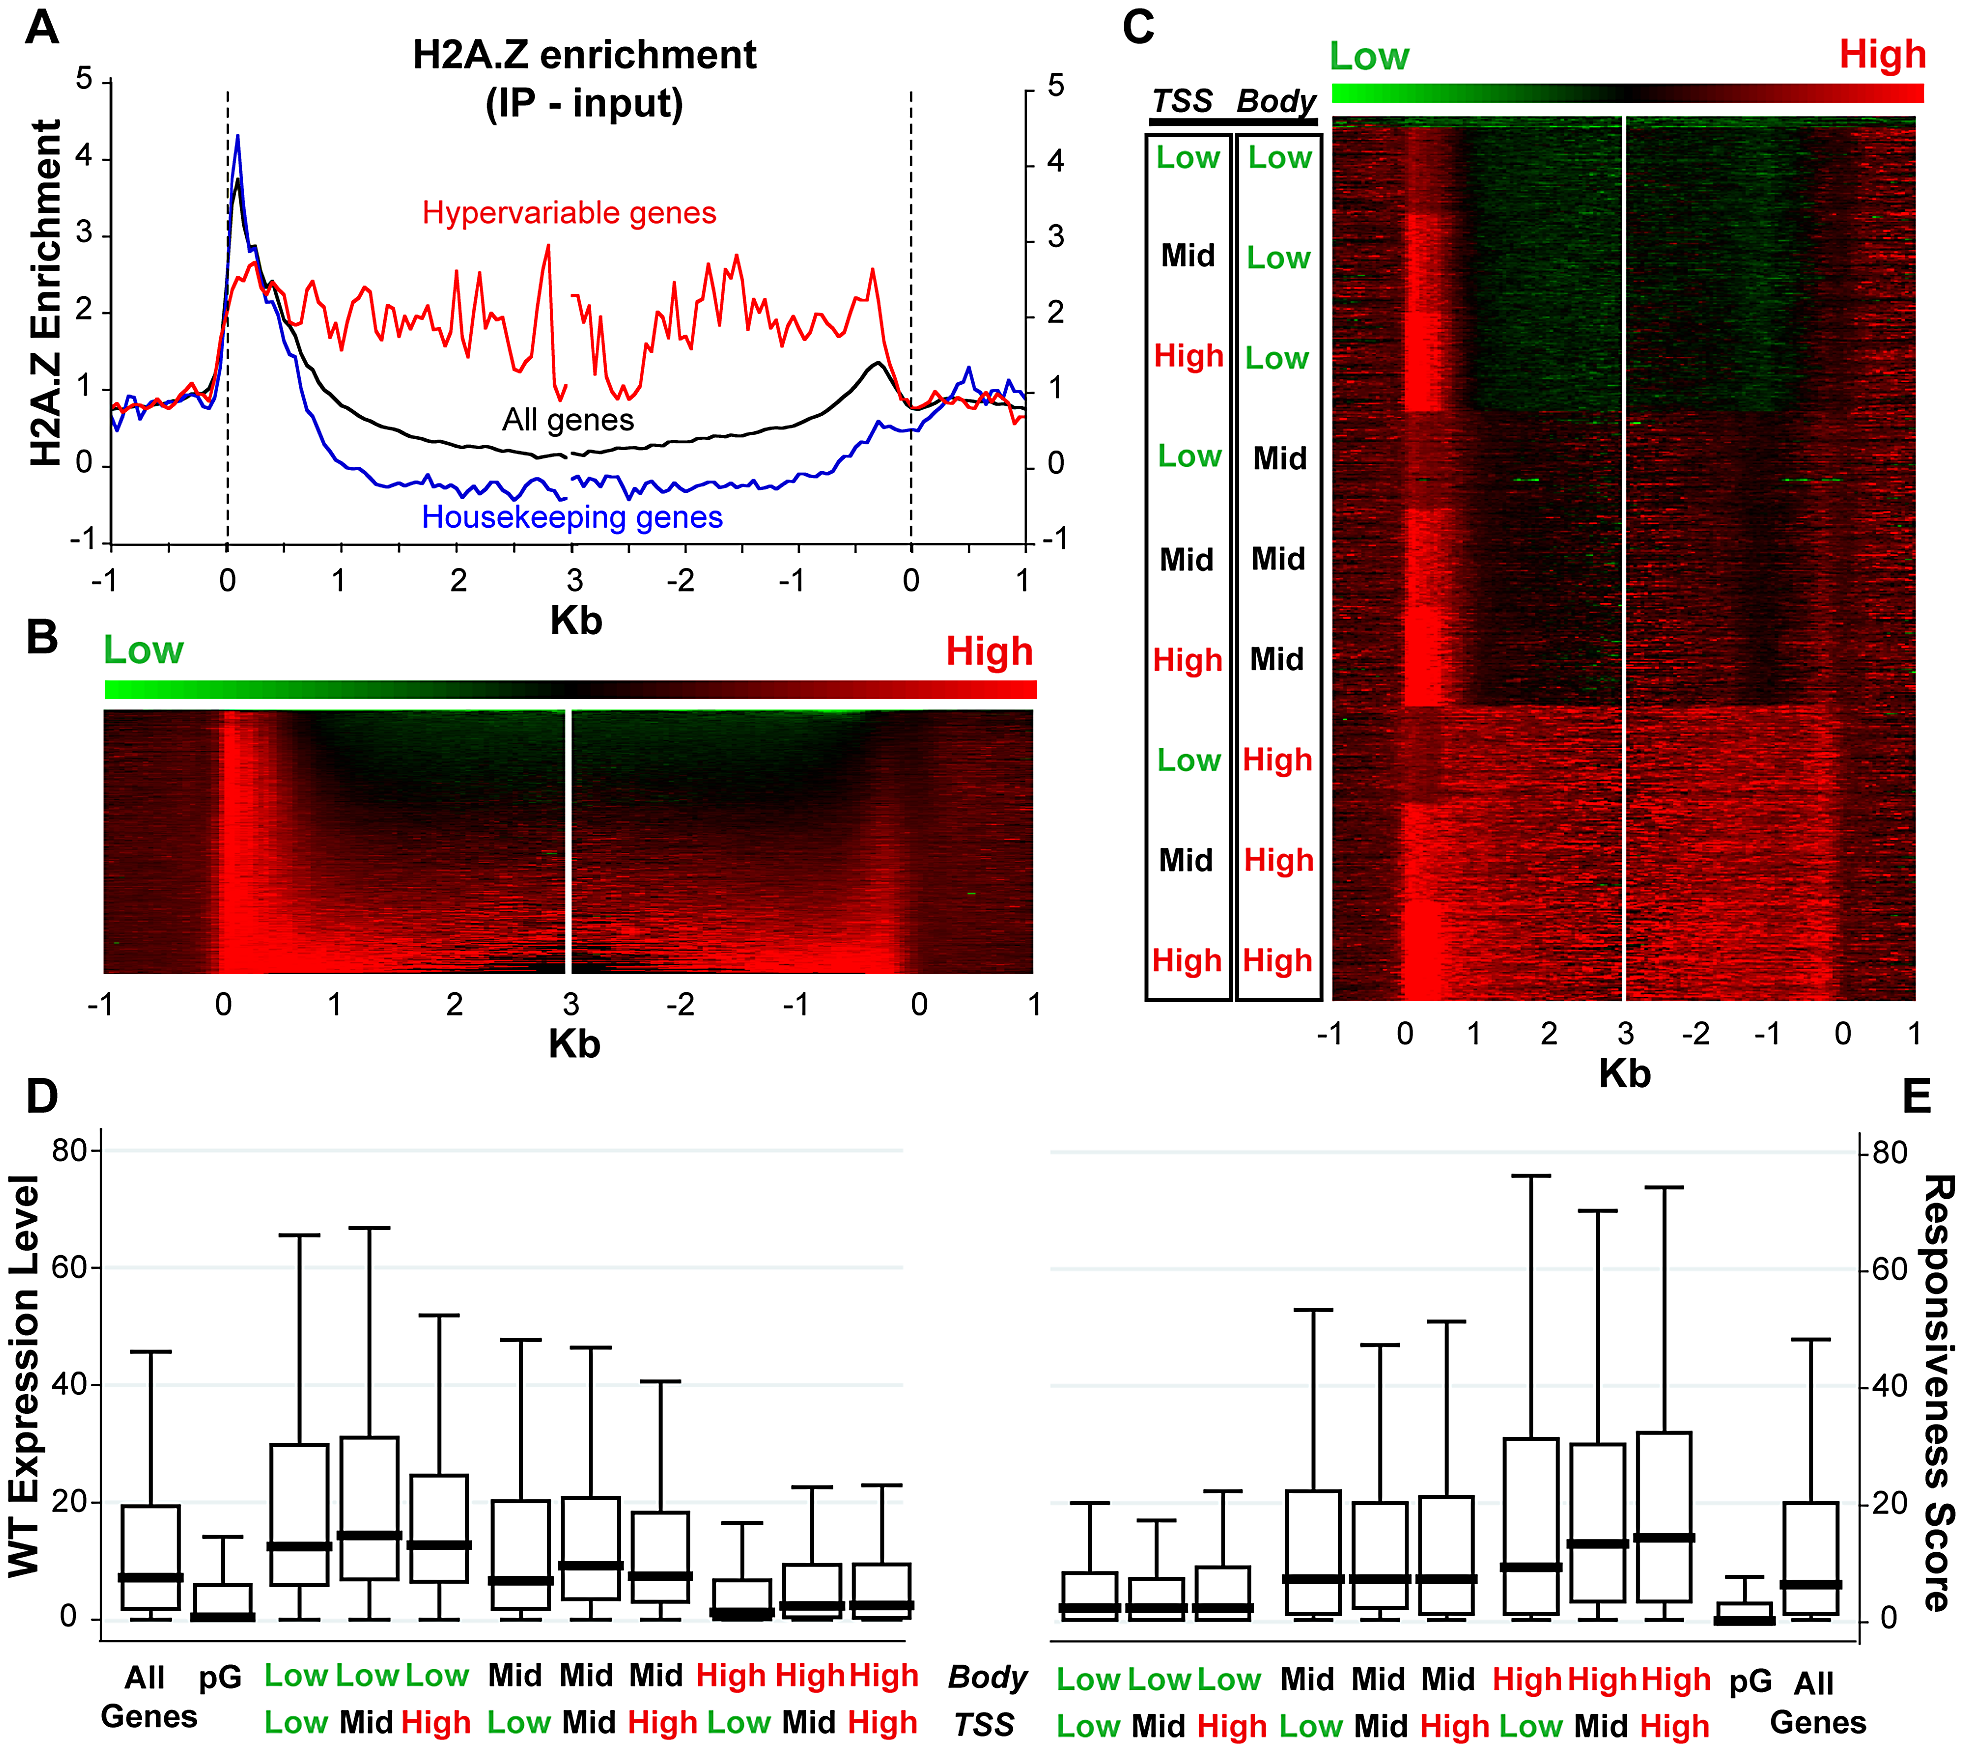 H2A.Z enrichment in gene bodies is associated with lower expression and higher responsiveness.